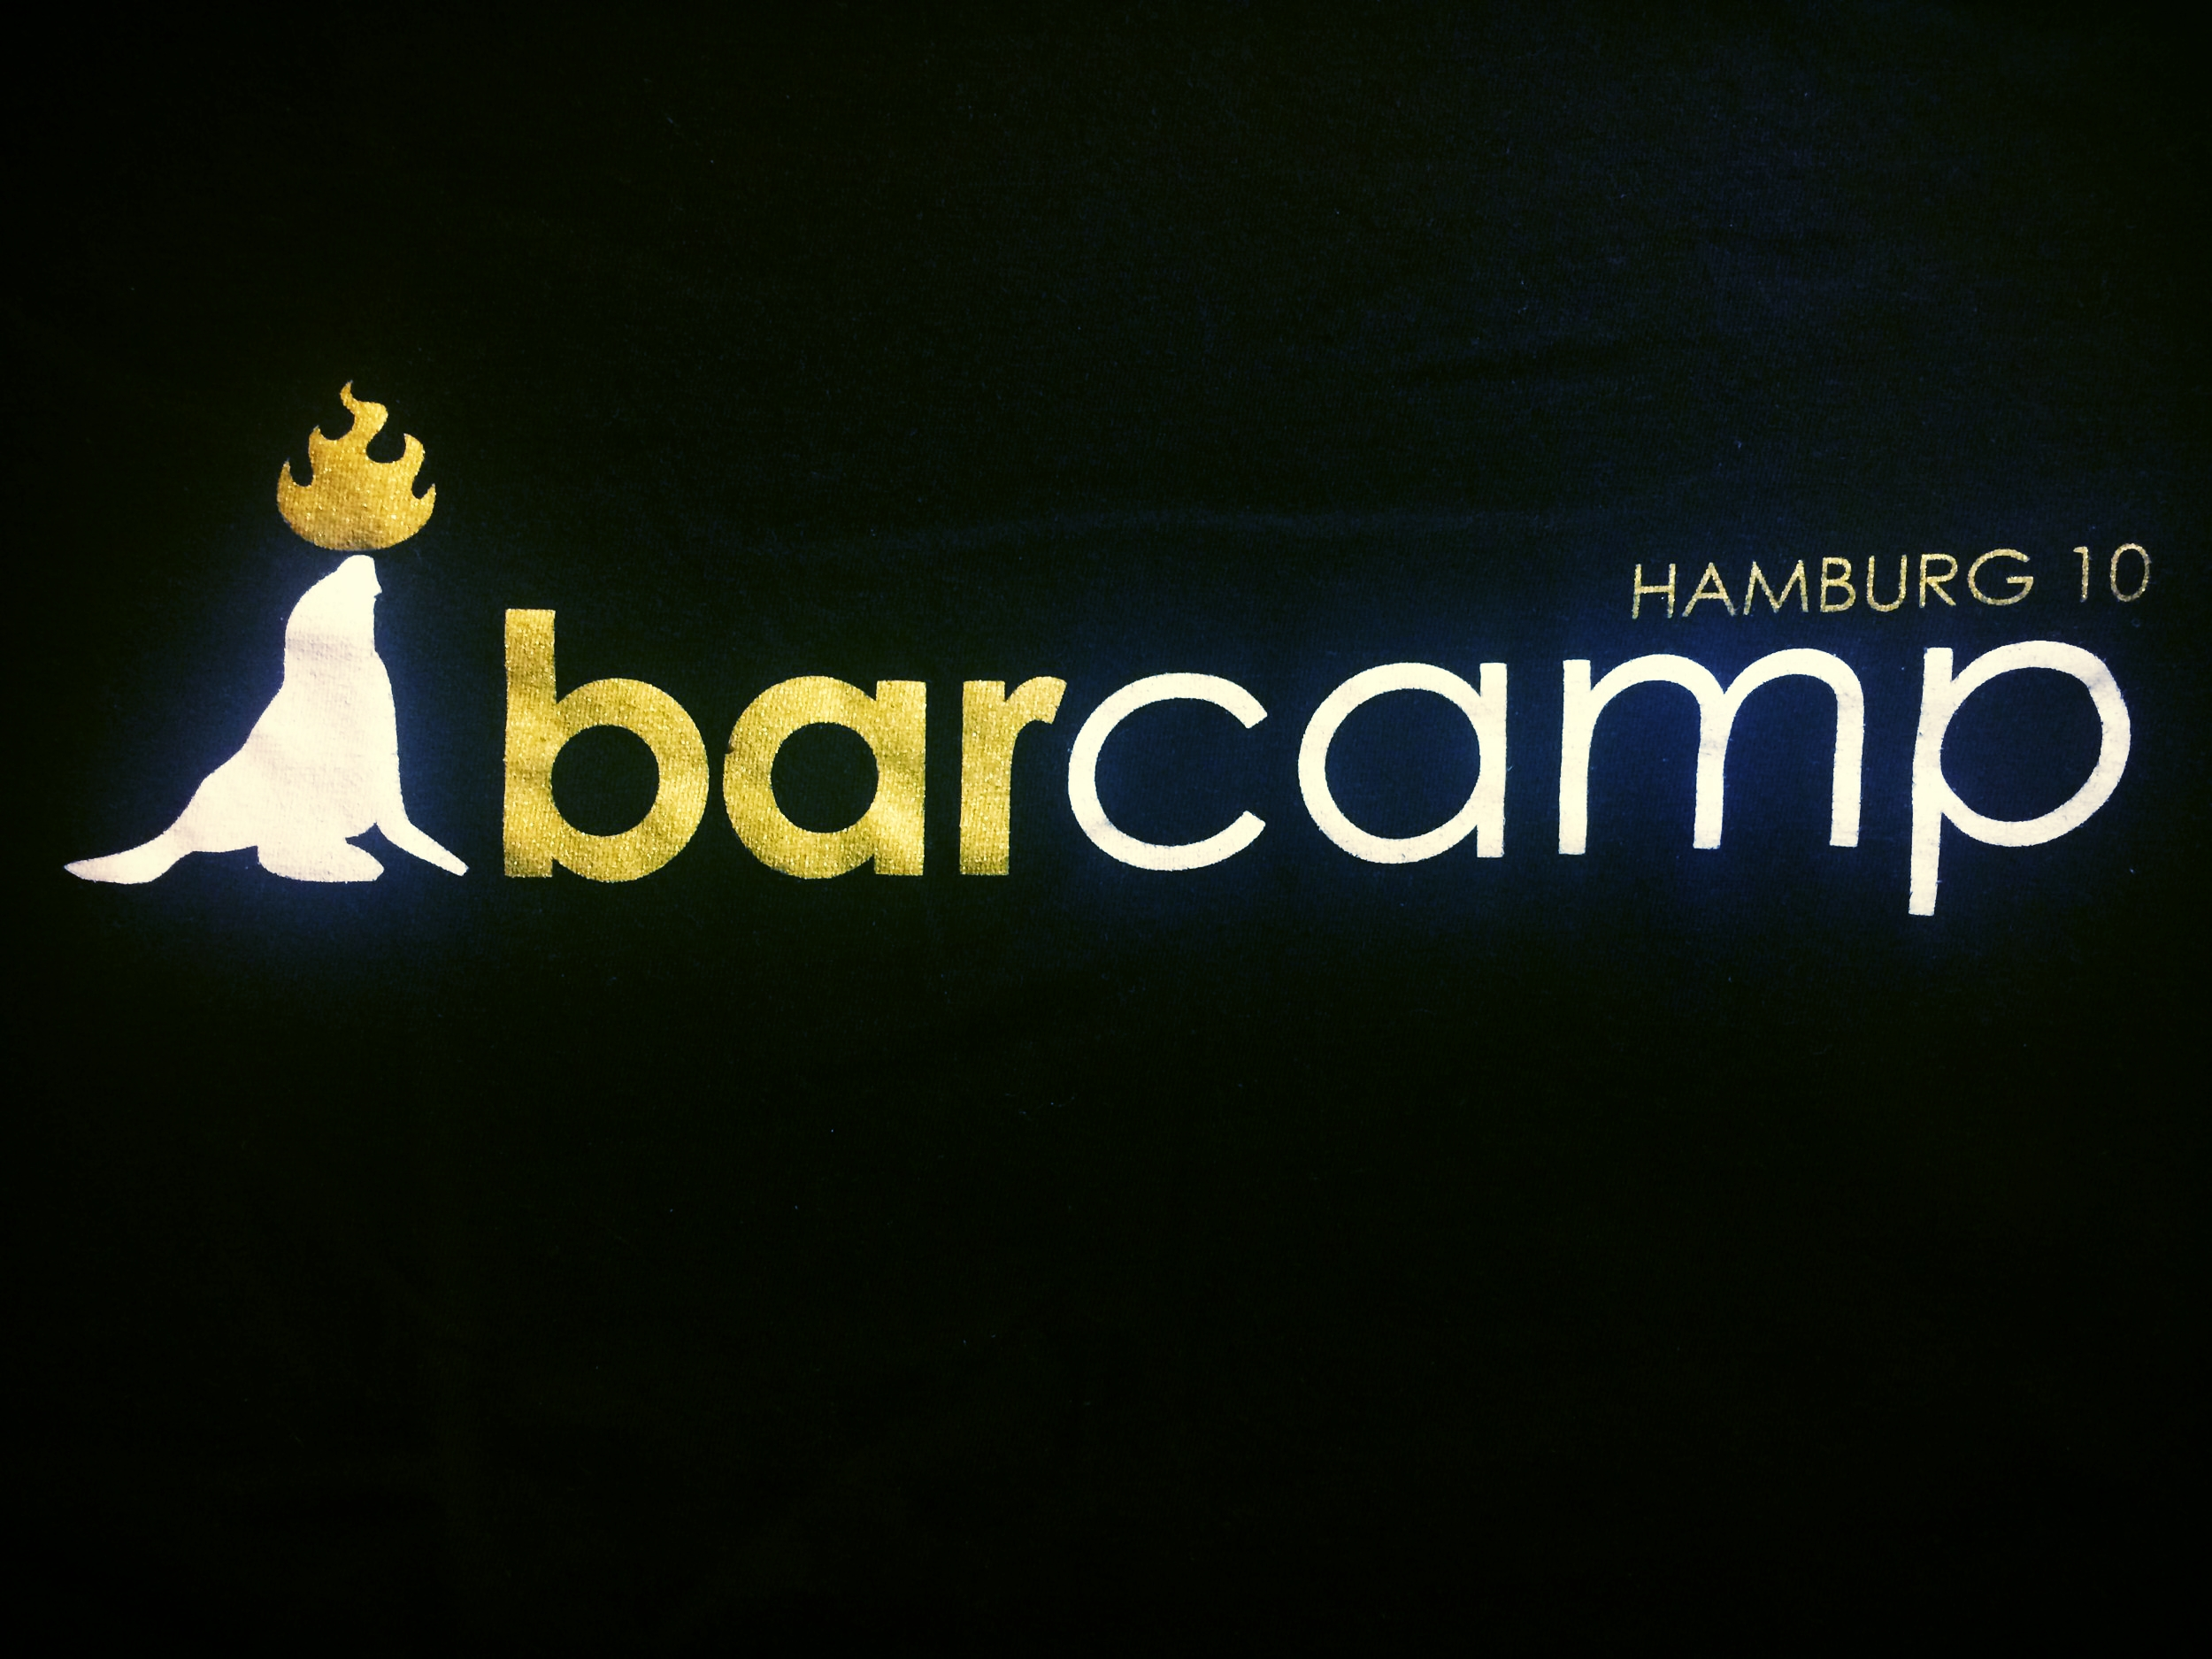 BarCamp Hamburg